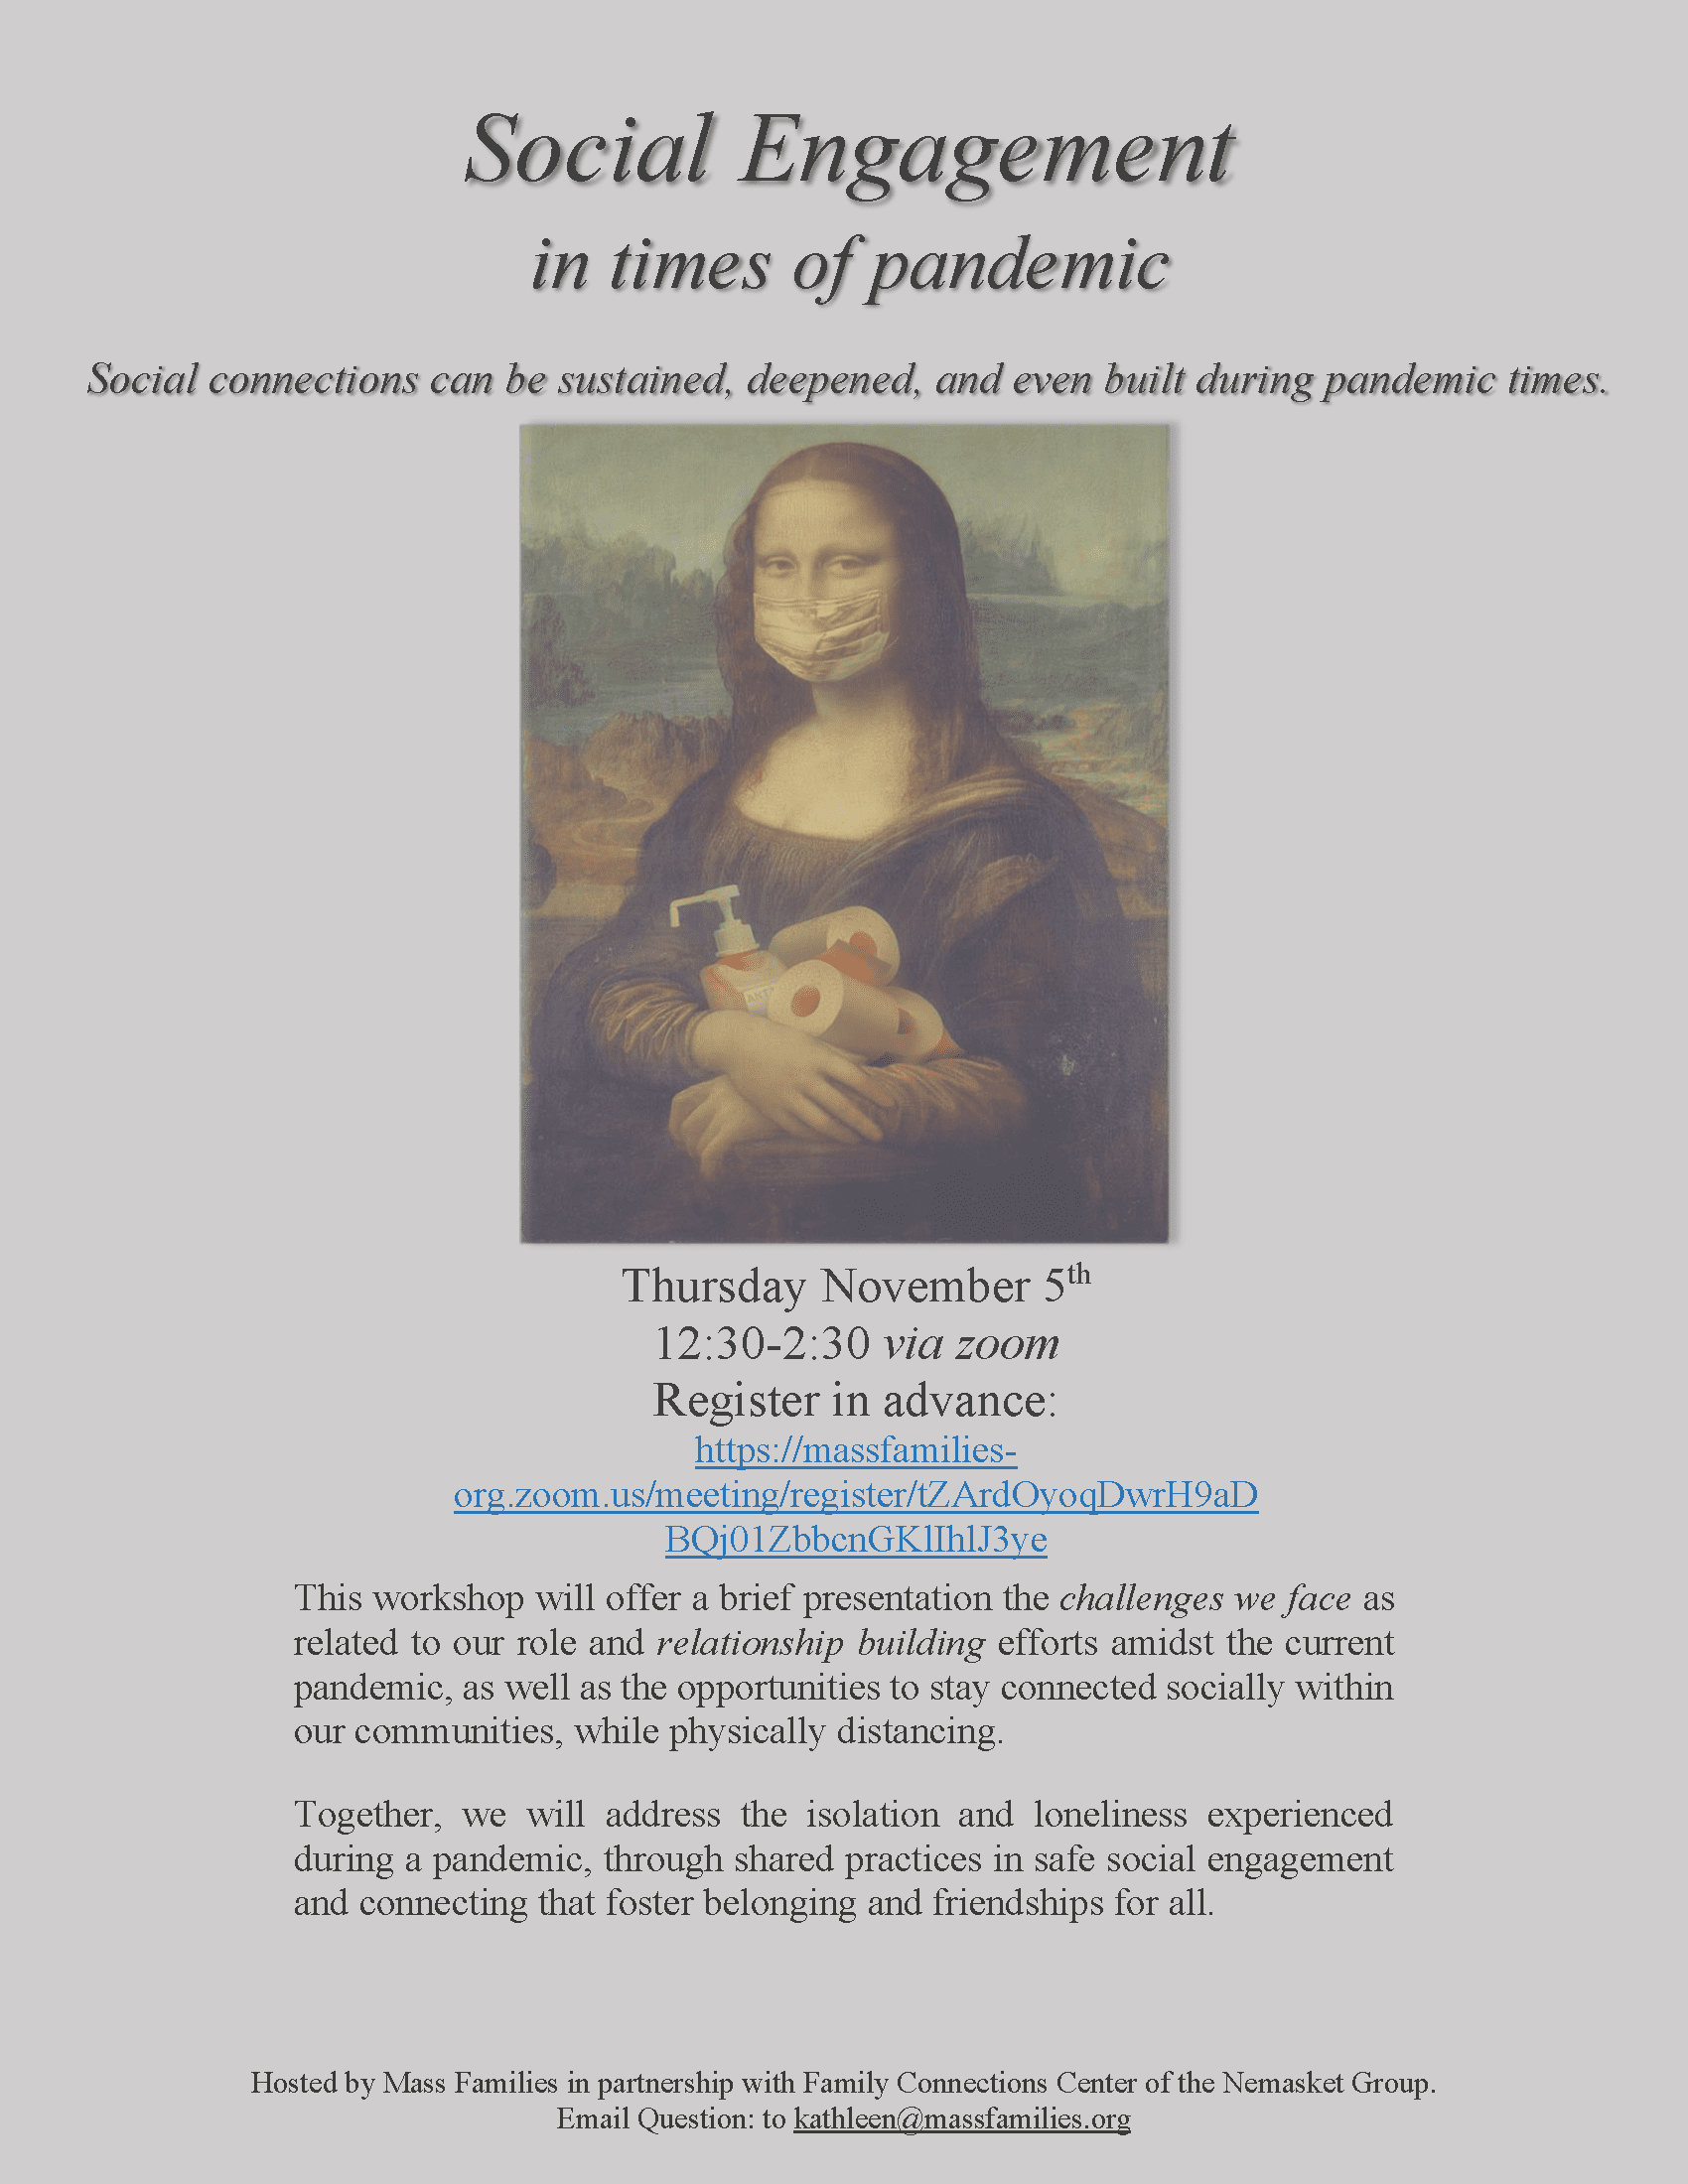 Social Engagement in Times of Pandemic November 5th 2020